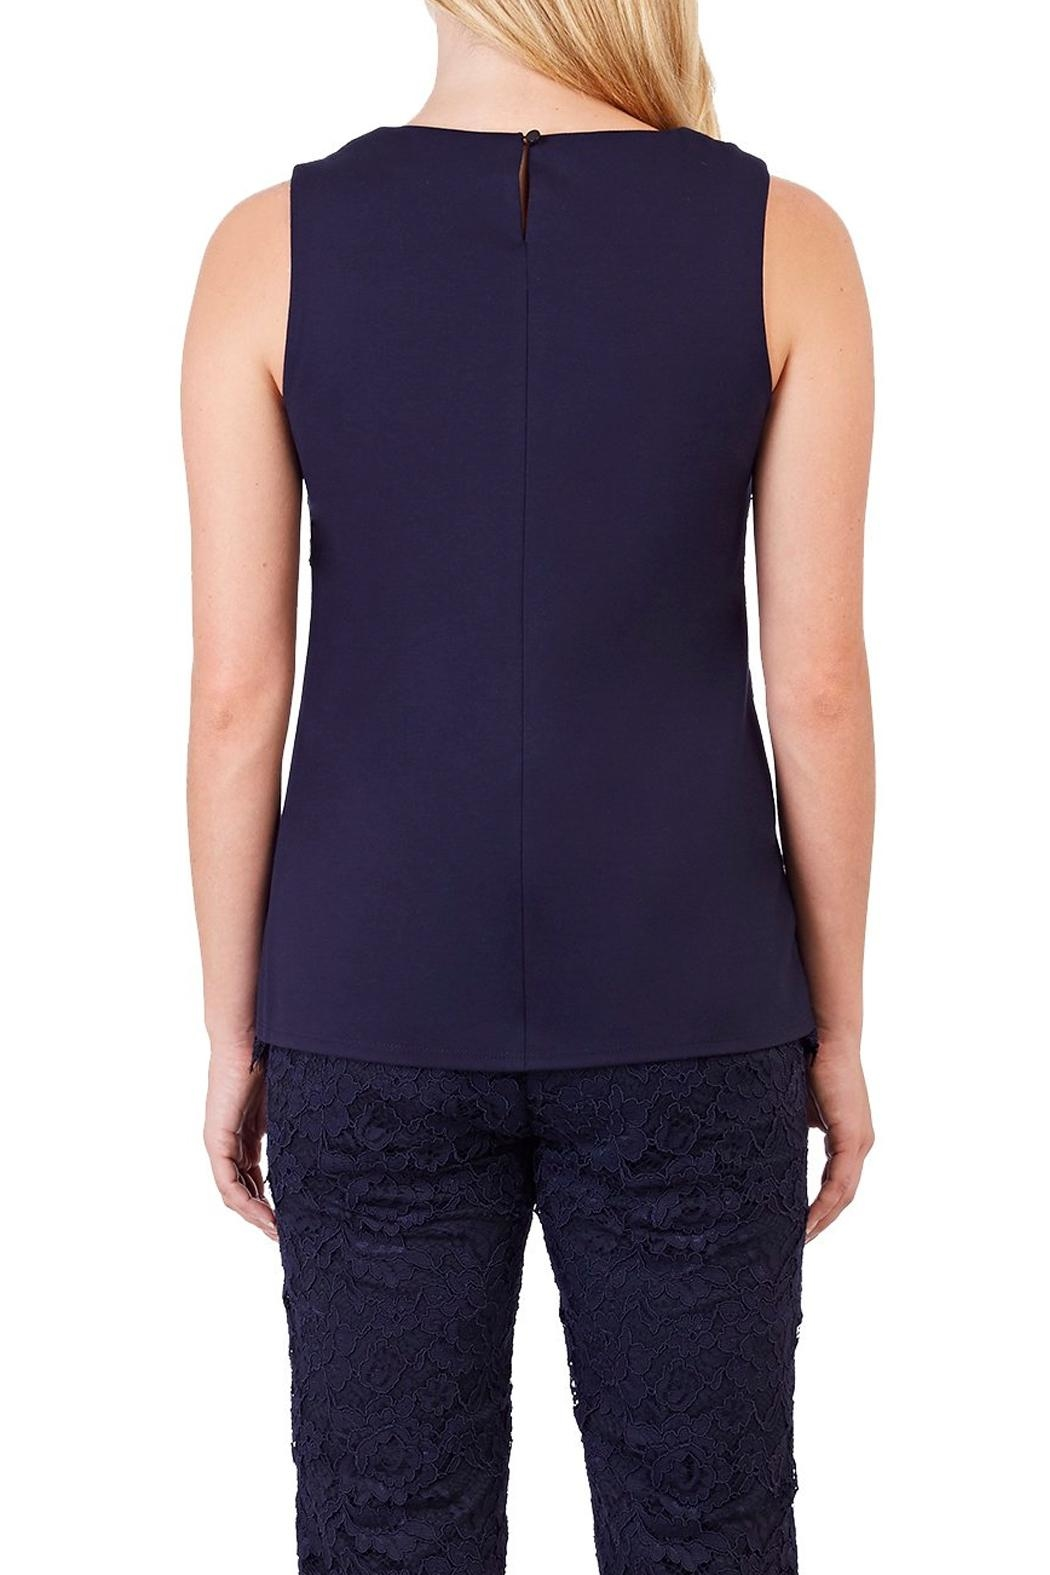 Jude Connally Nina Lace Top - Front Full Image